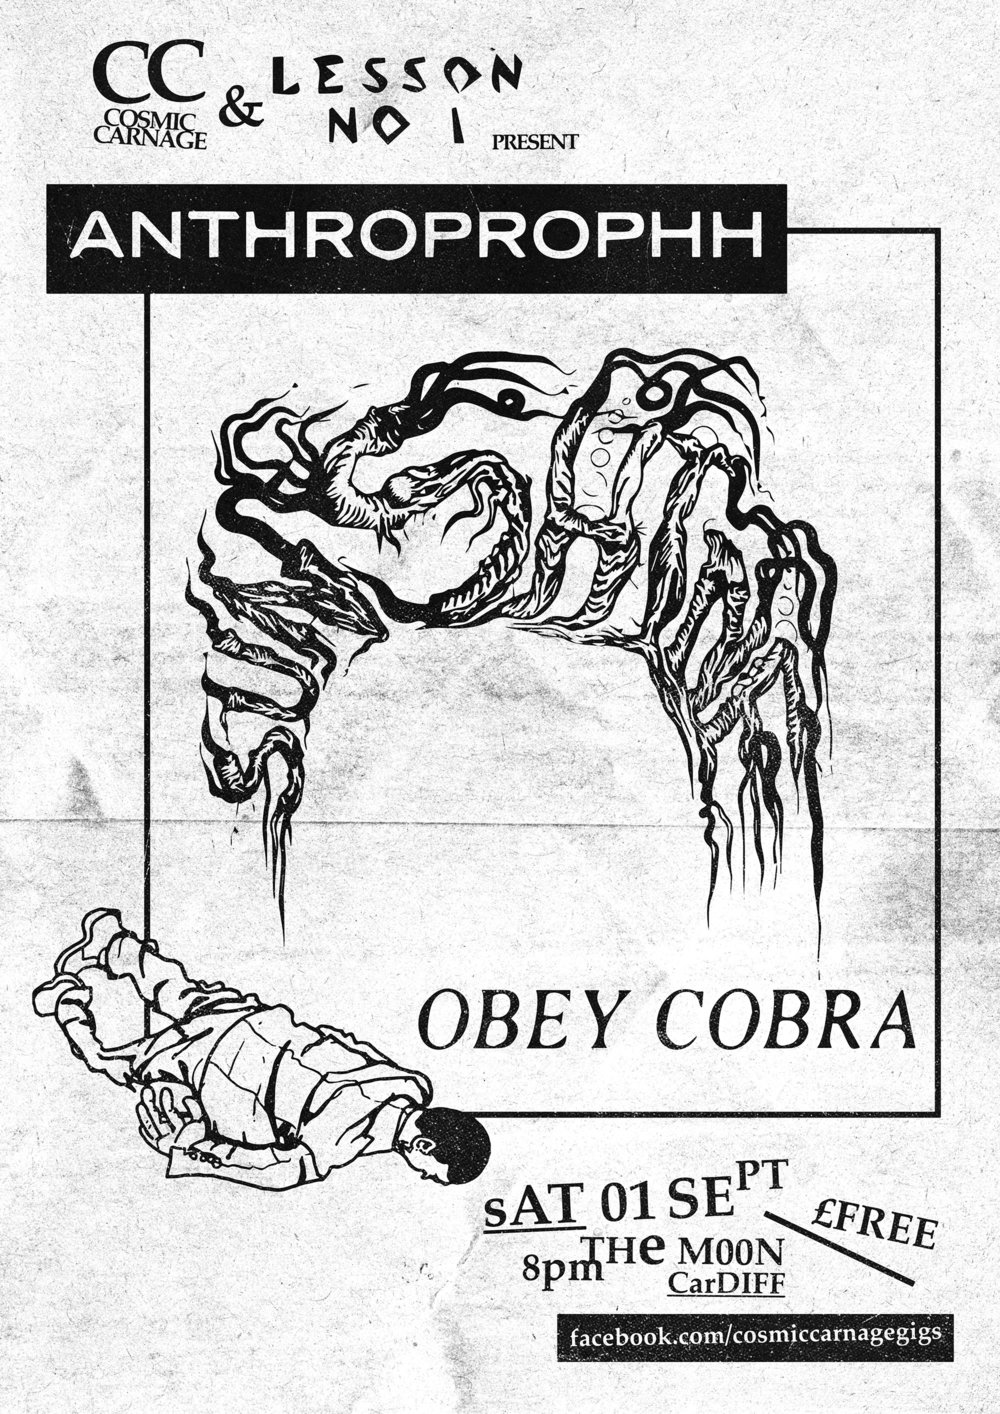 Anthroprophh poster smaller.jpg